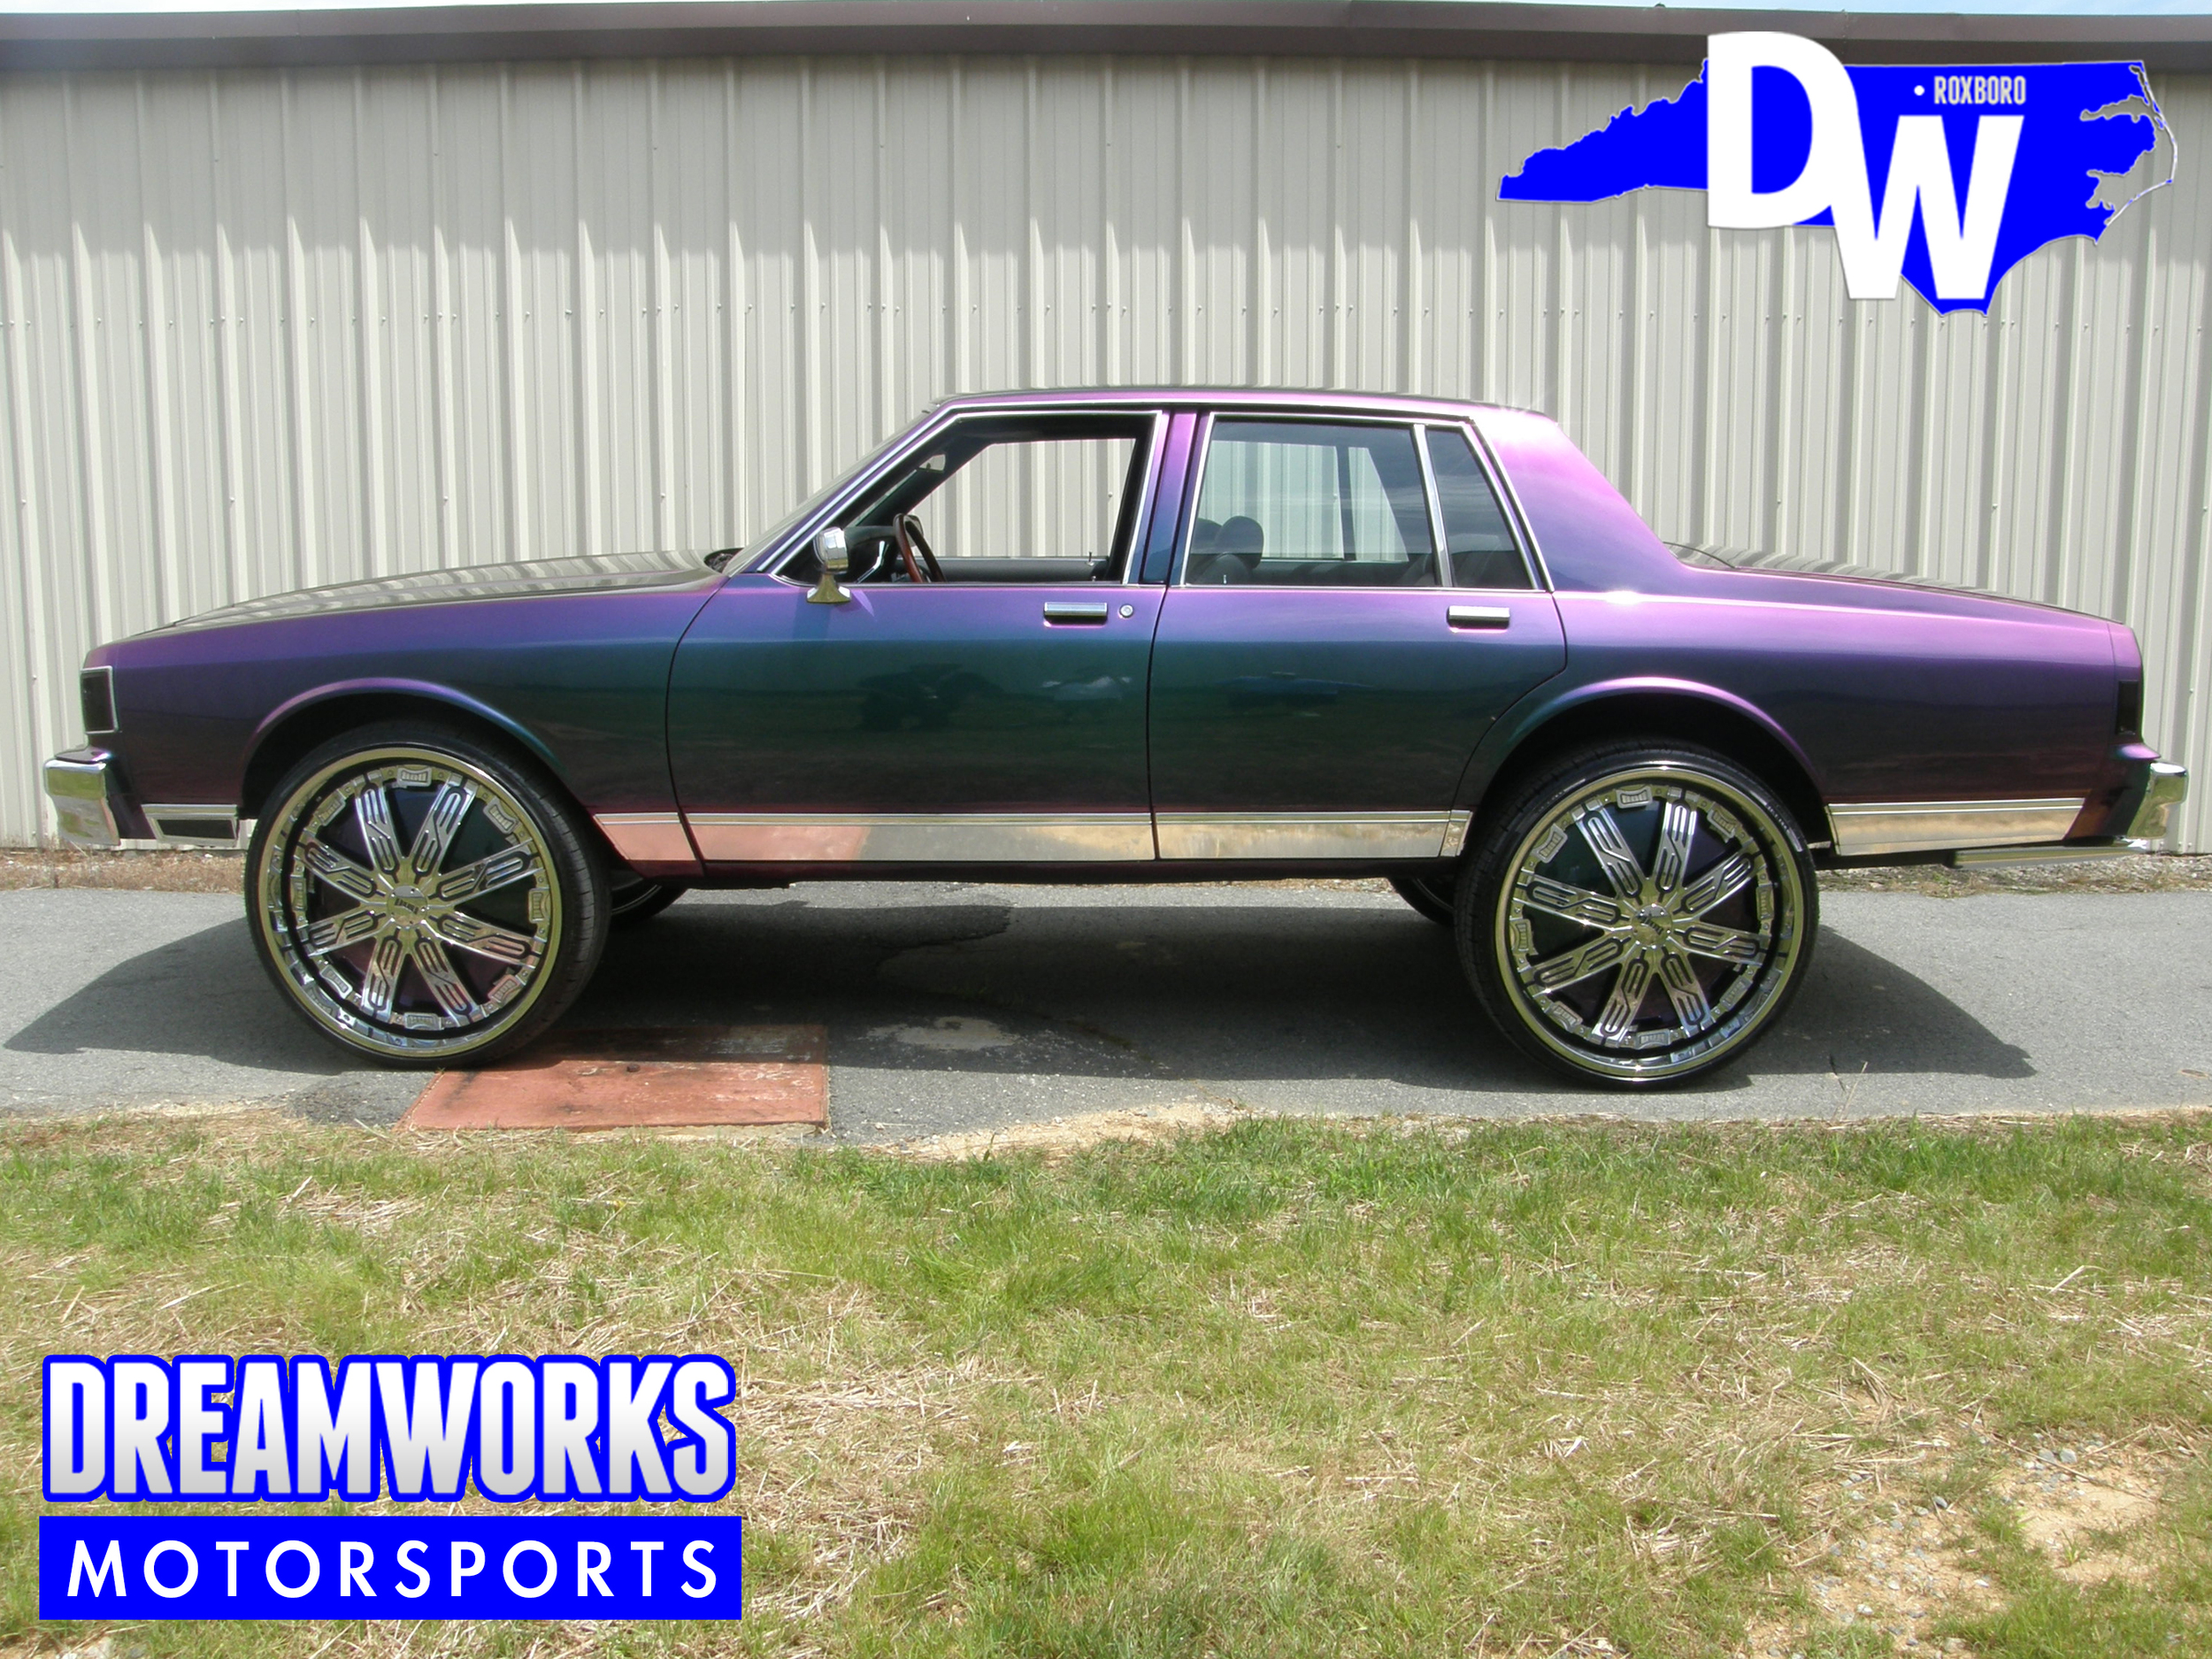 86-Chevrolet-Caprice-DUB-Tycoons-Dreamworks-Motorsports-1.jpg